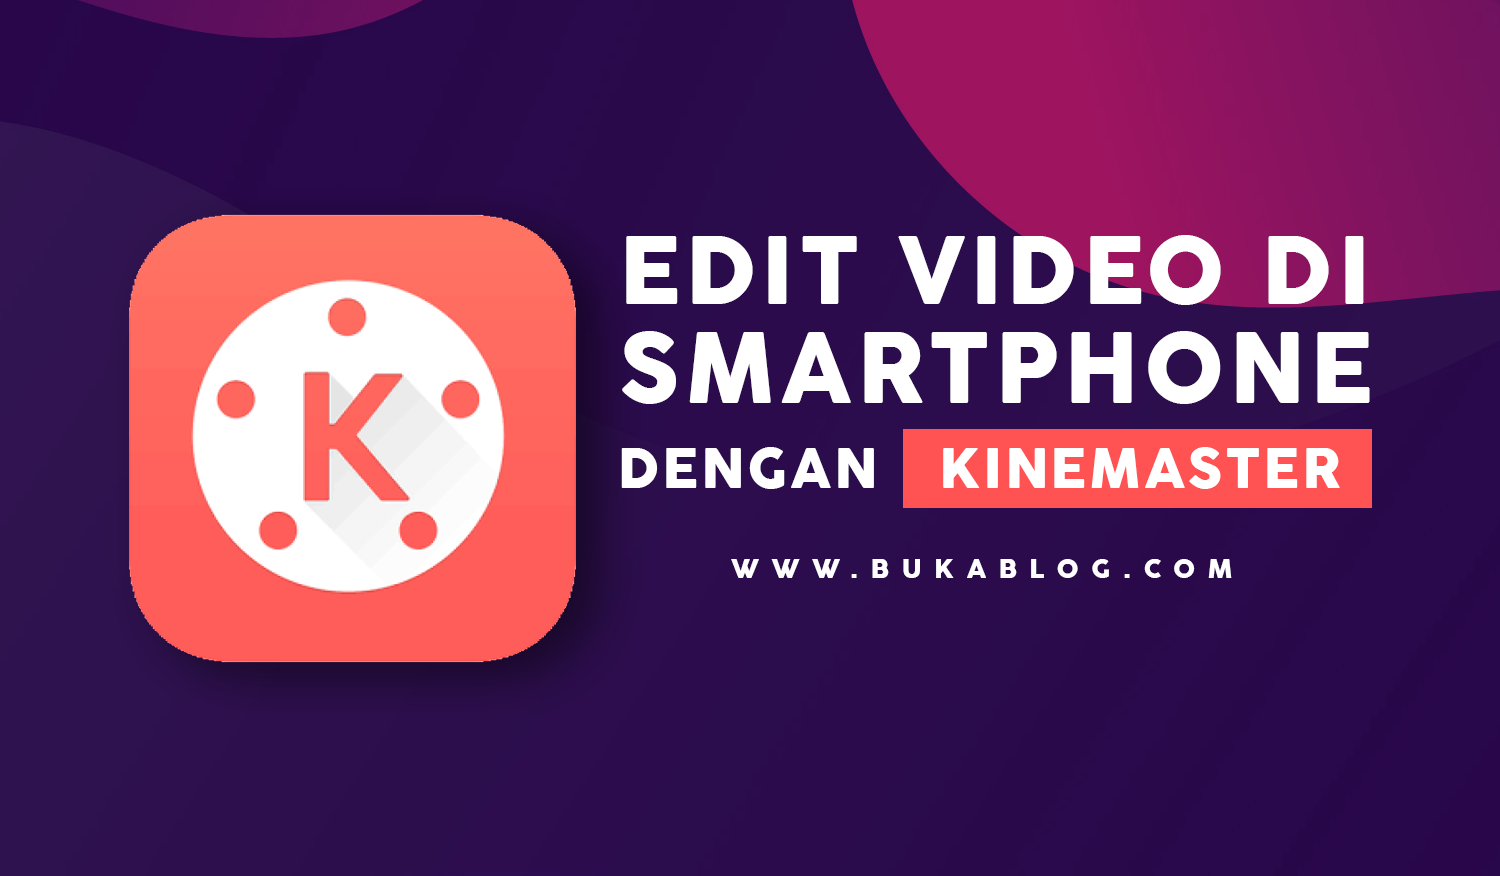 Cara Edit Video di HP ANDROID Dengan Kinemaster LENGKAP